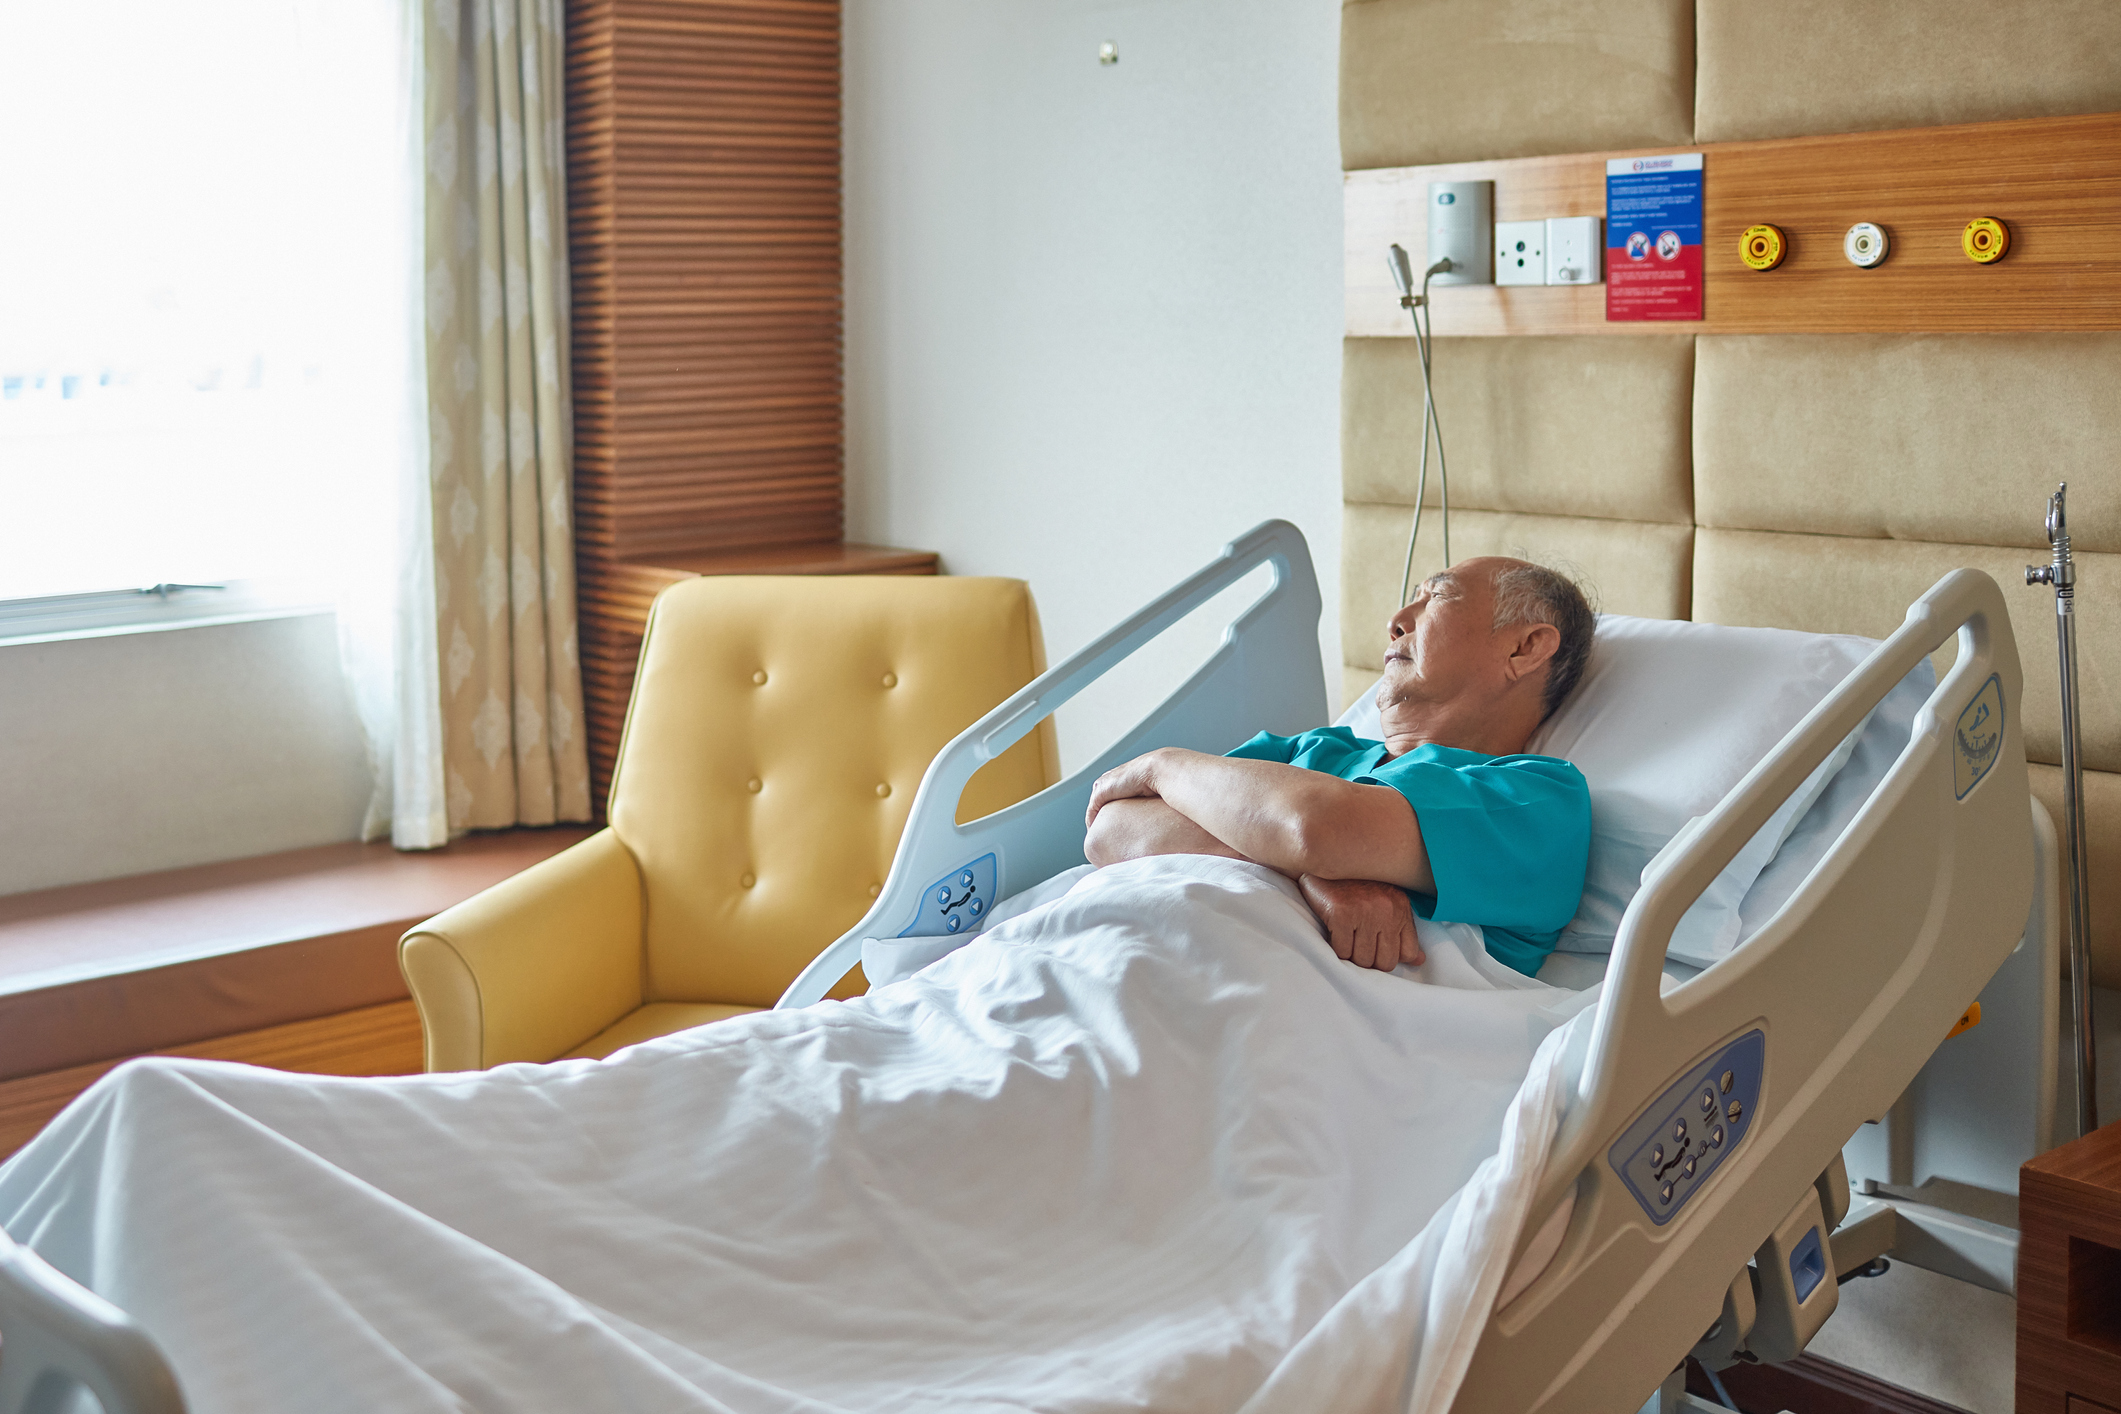 Researchers are looking to better understand hospital delirium in older adults.